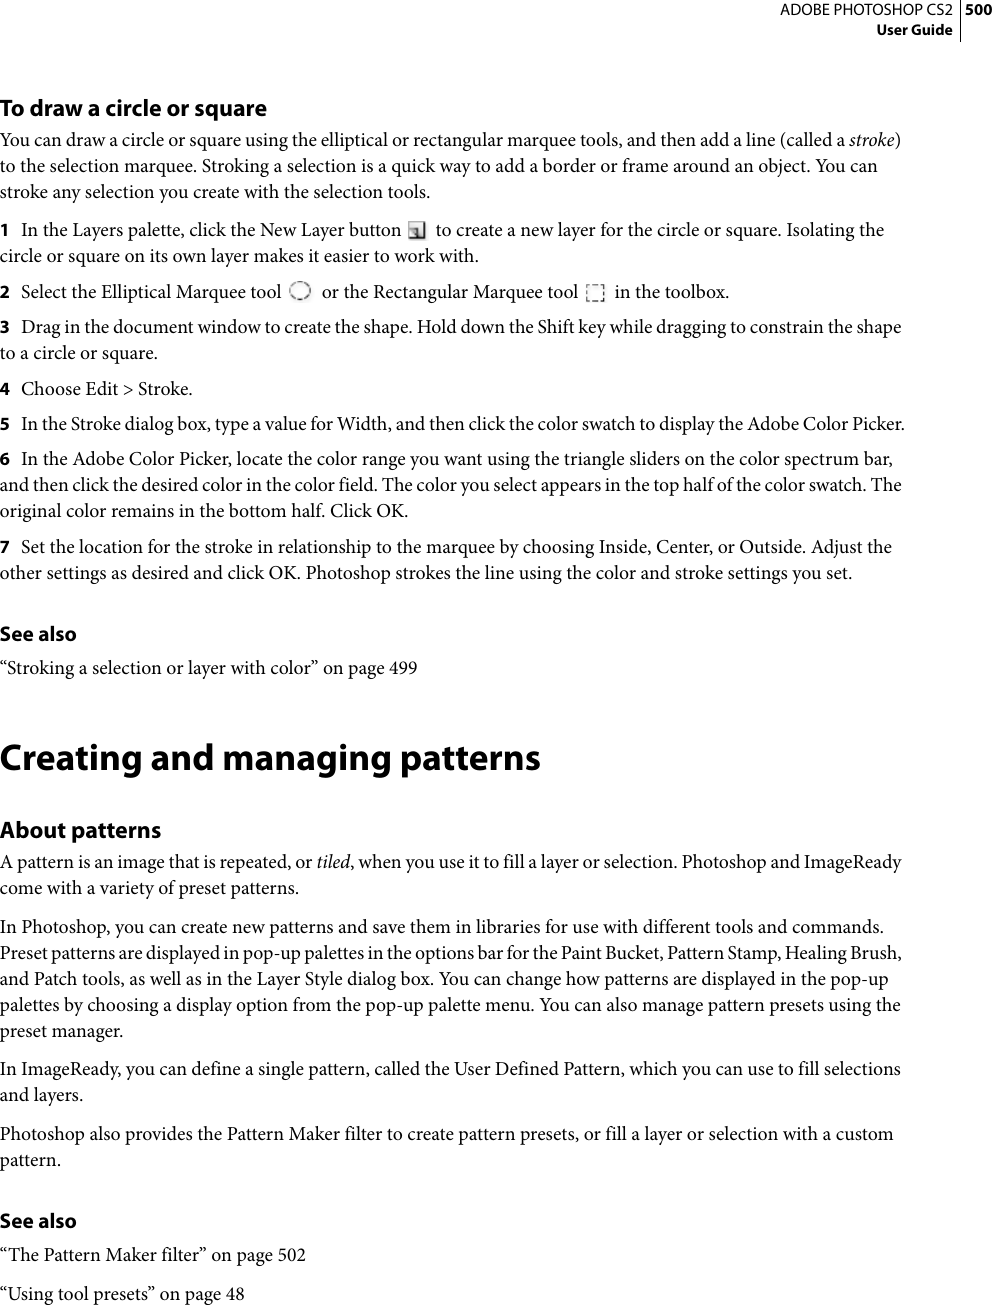 Adobe Cs2 Users Manual ManualsLib Makes It Easy To Find Manuals Online!